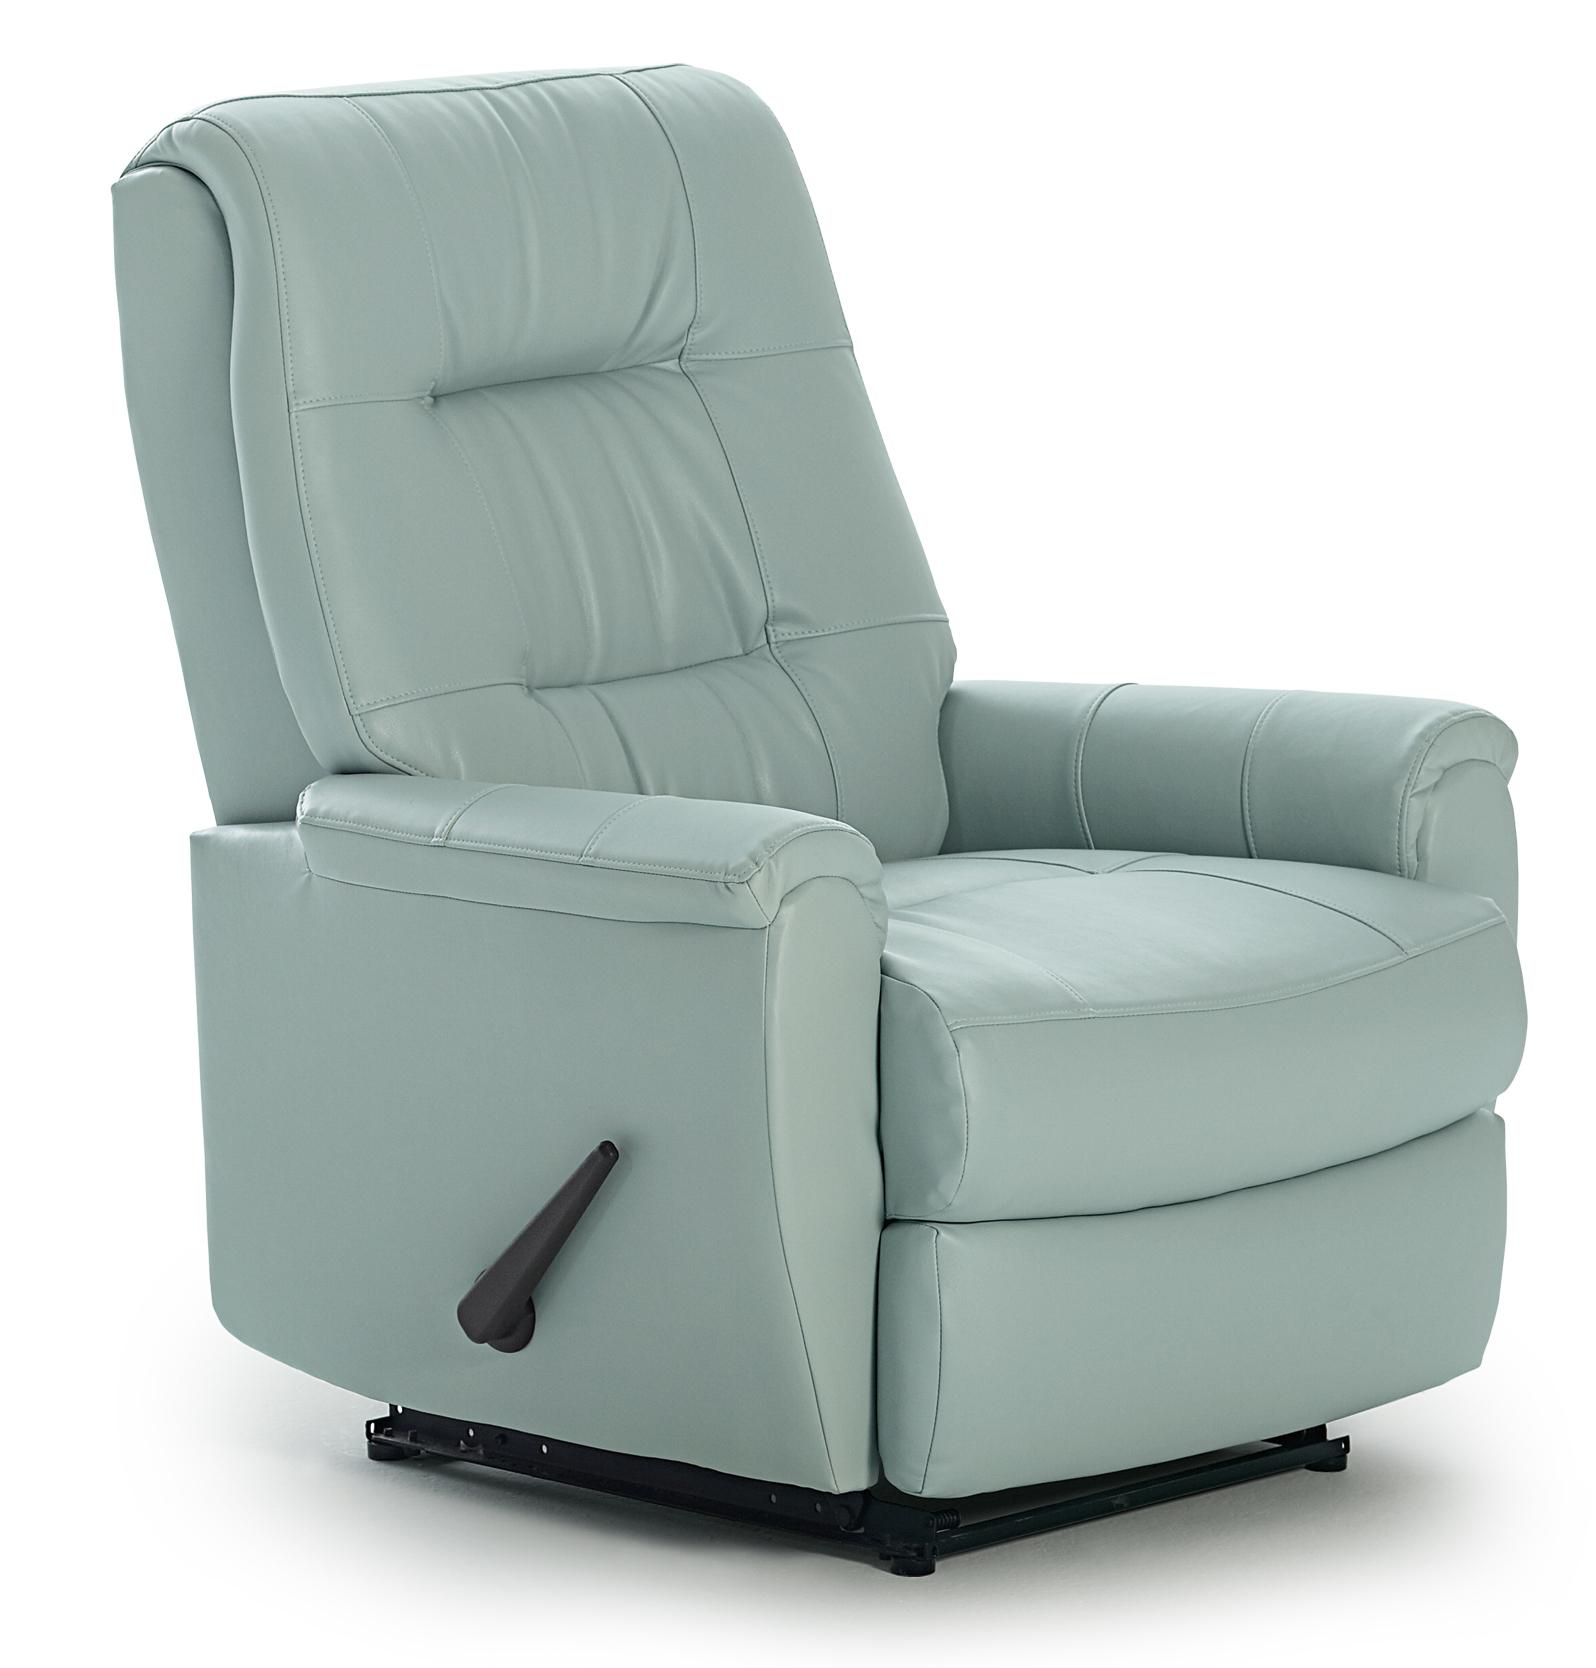 Leather Swivel Rocker Recliner And Its Benefits | Throughout Decker Ii Fabric Swivel Rocker Recliners (Image 12 of 20)